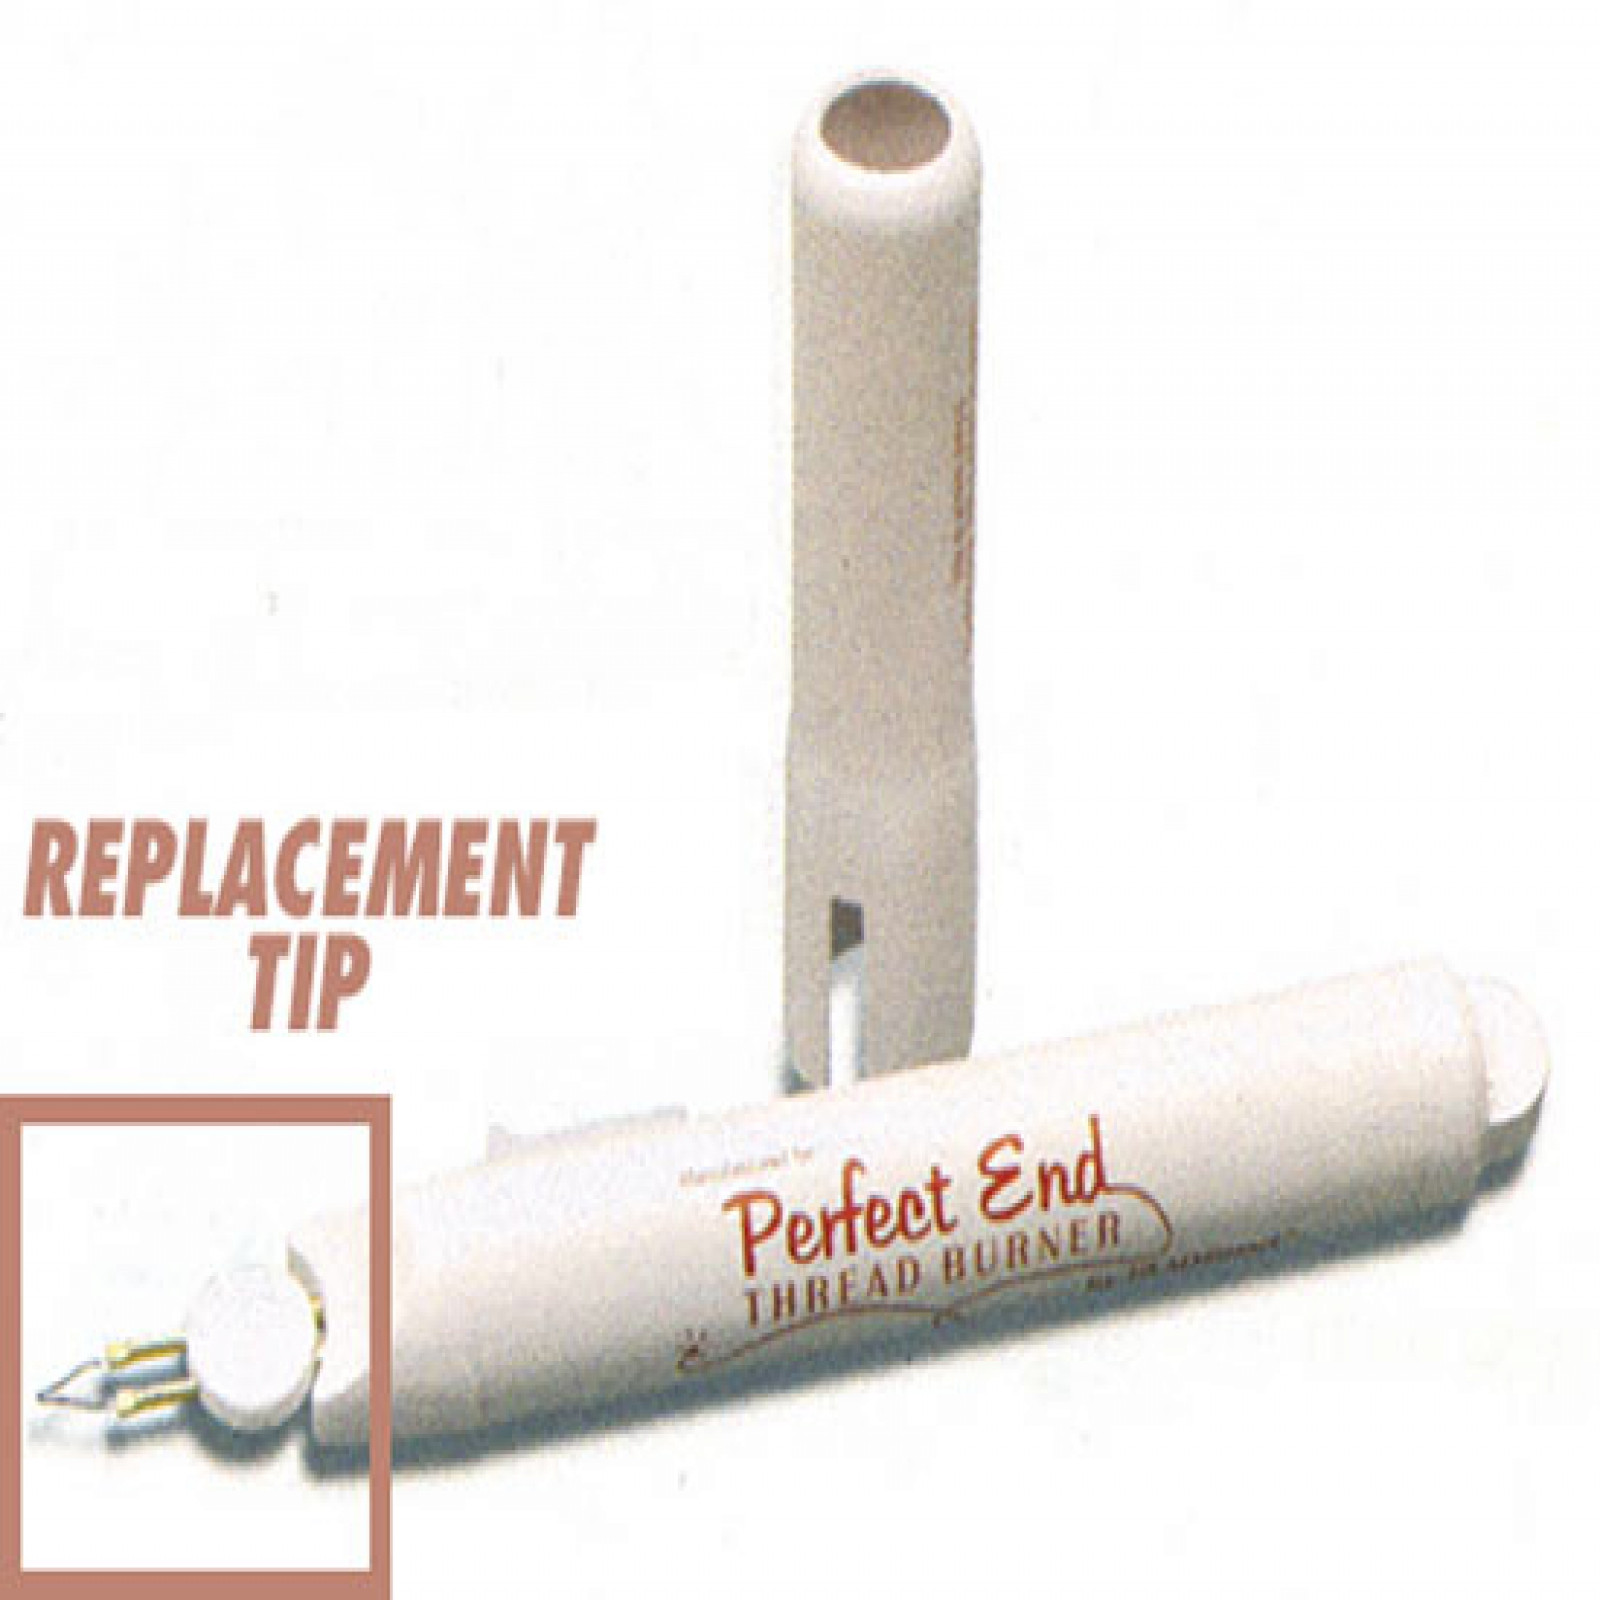 PERFECT END RIGGING LINE BURNER REPLACEMENT TIP